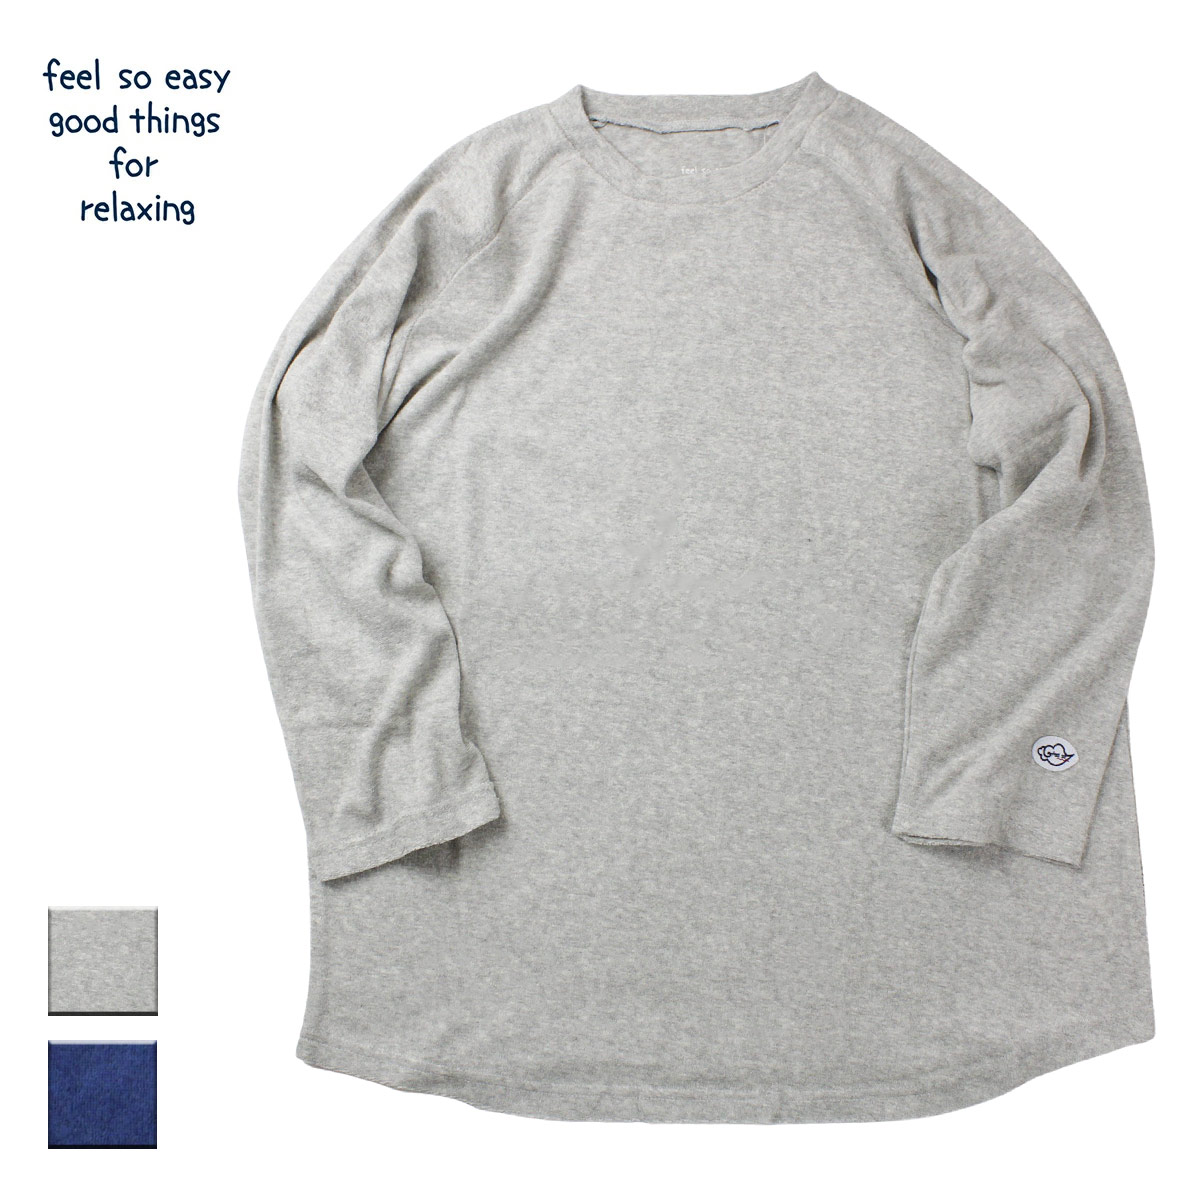 feel so easy good things for relaxing フィールソーイージー PILE 3/4 SLEEVE TEE